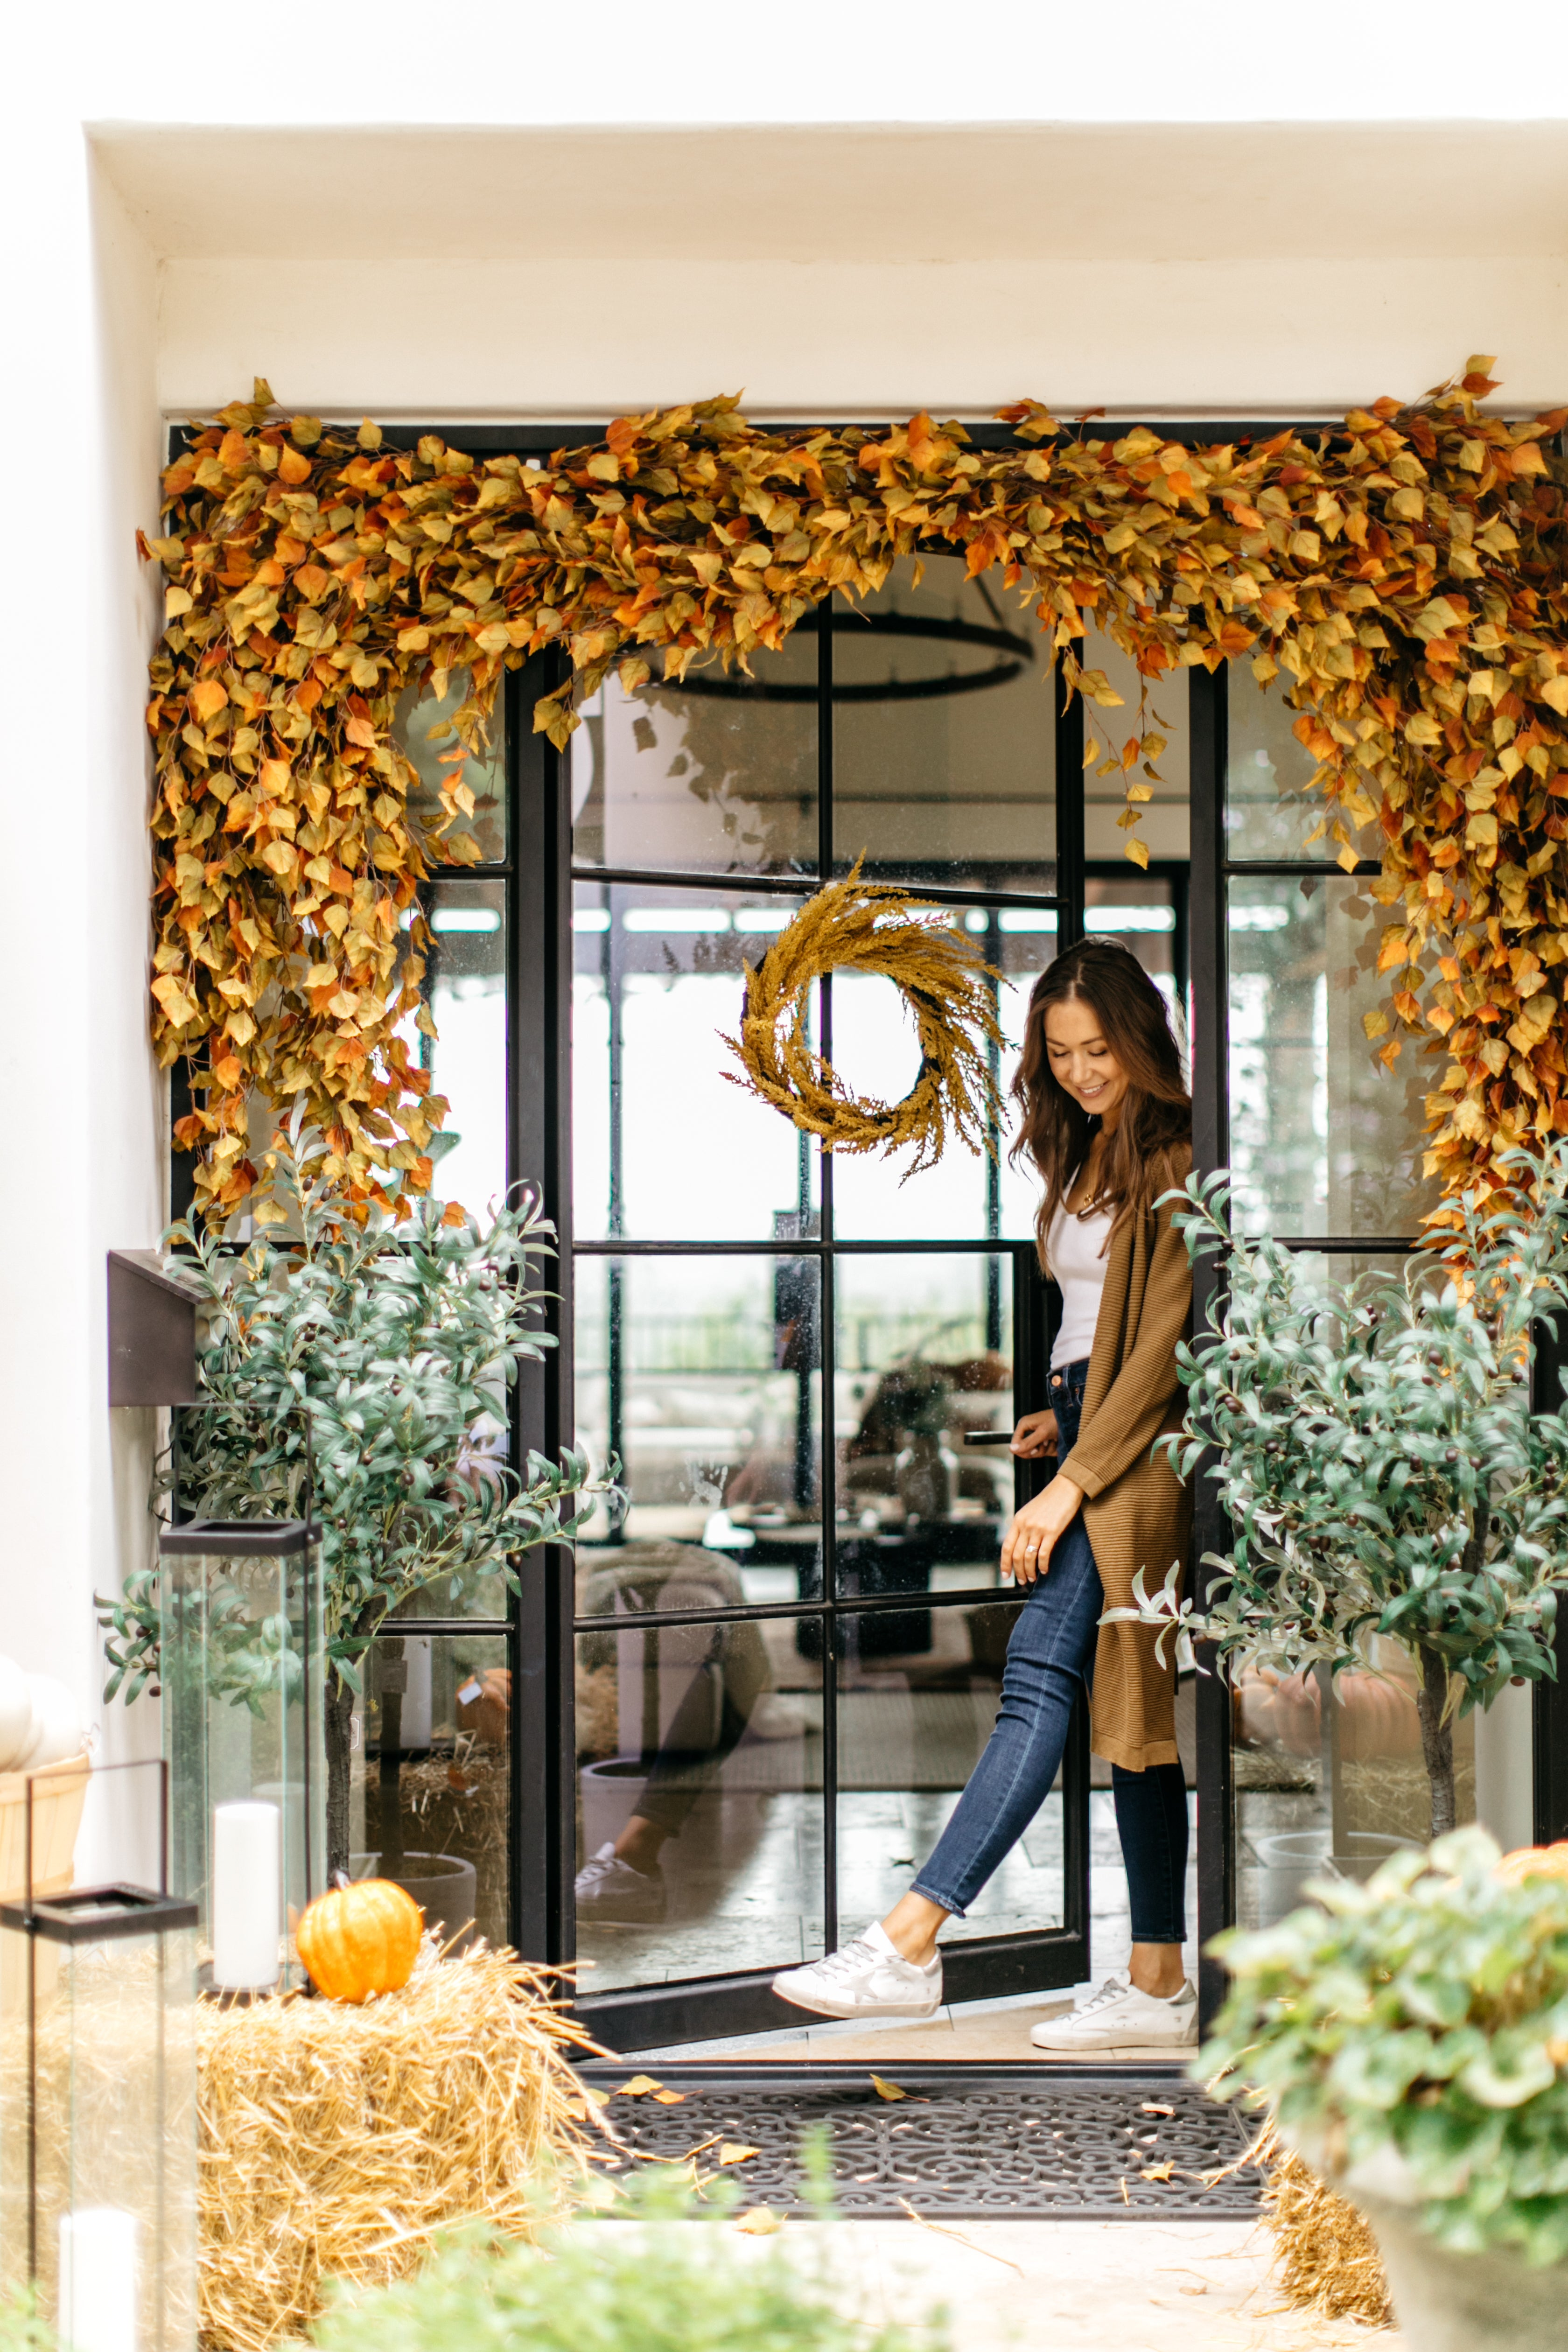 Camille Styles Made Over Her Home with Target's New Fall Home Decor Collection